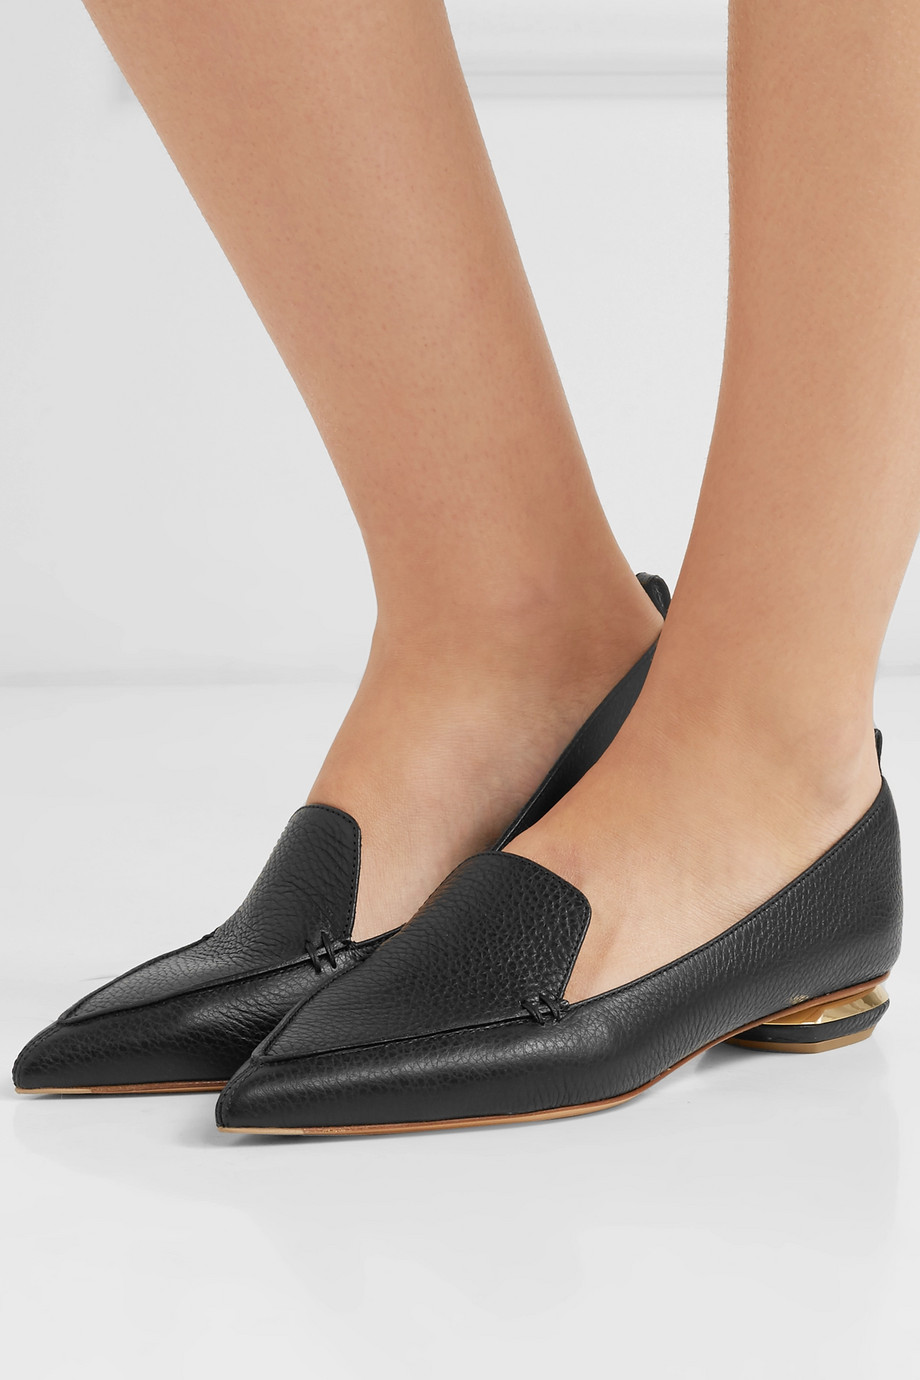 Nicholas Kirkwood Beya textured-leather point-toe flats